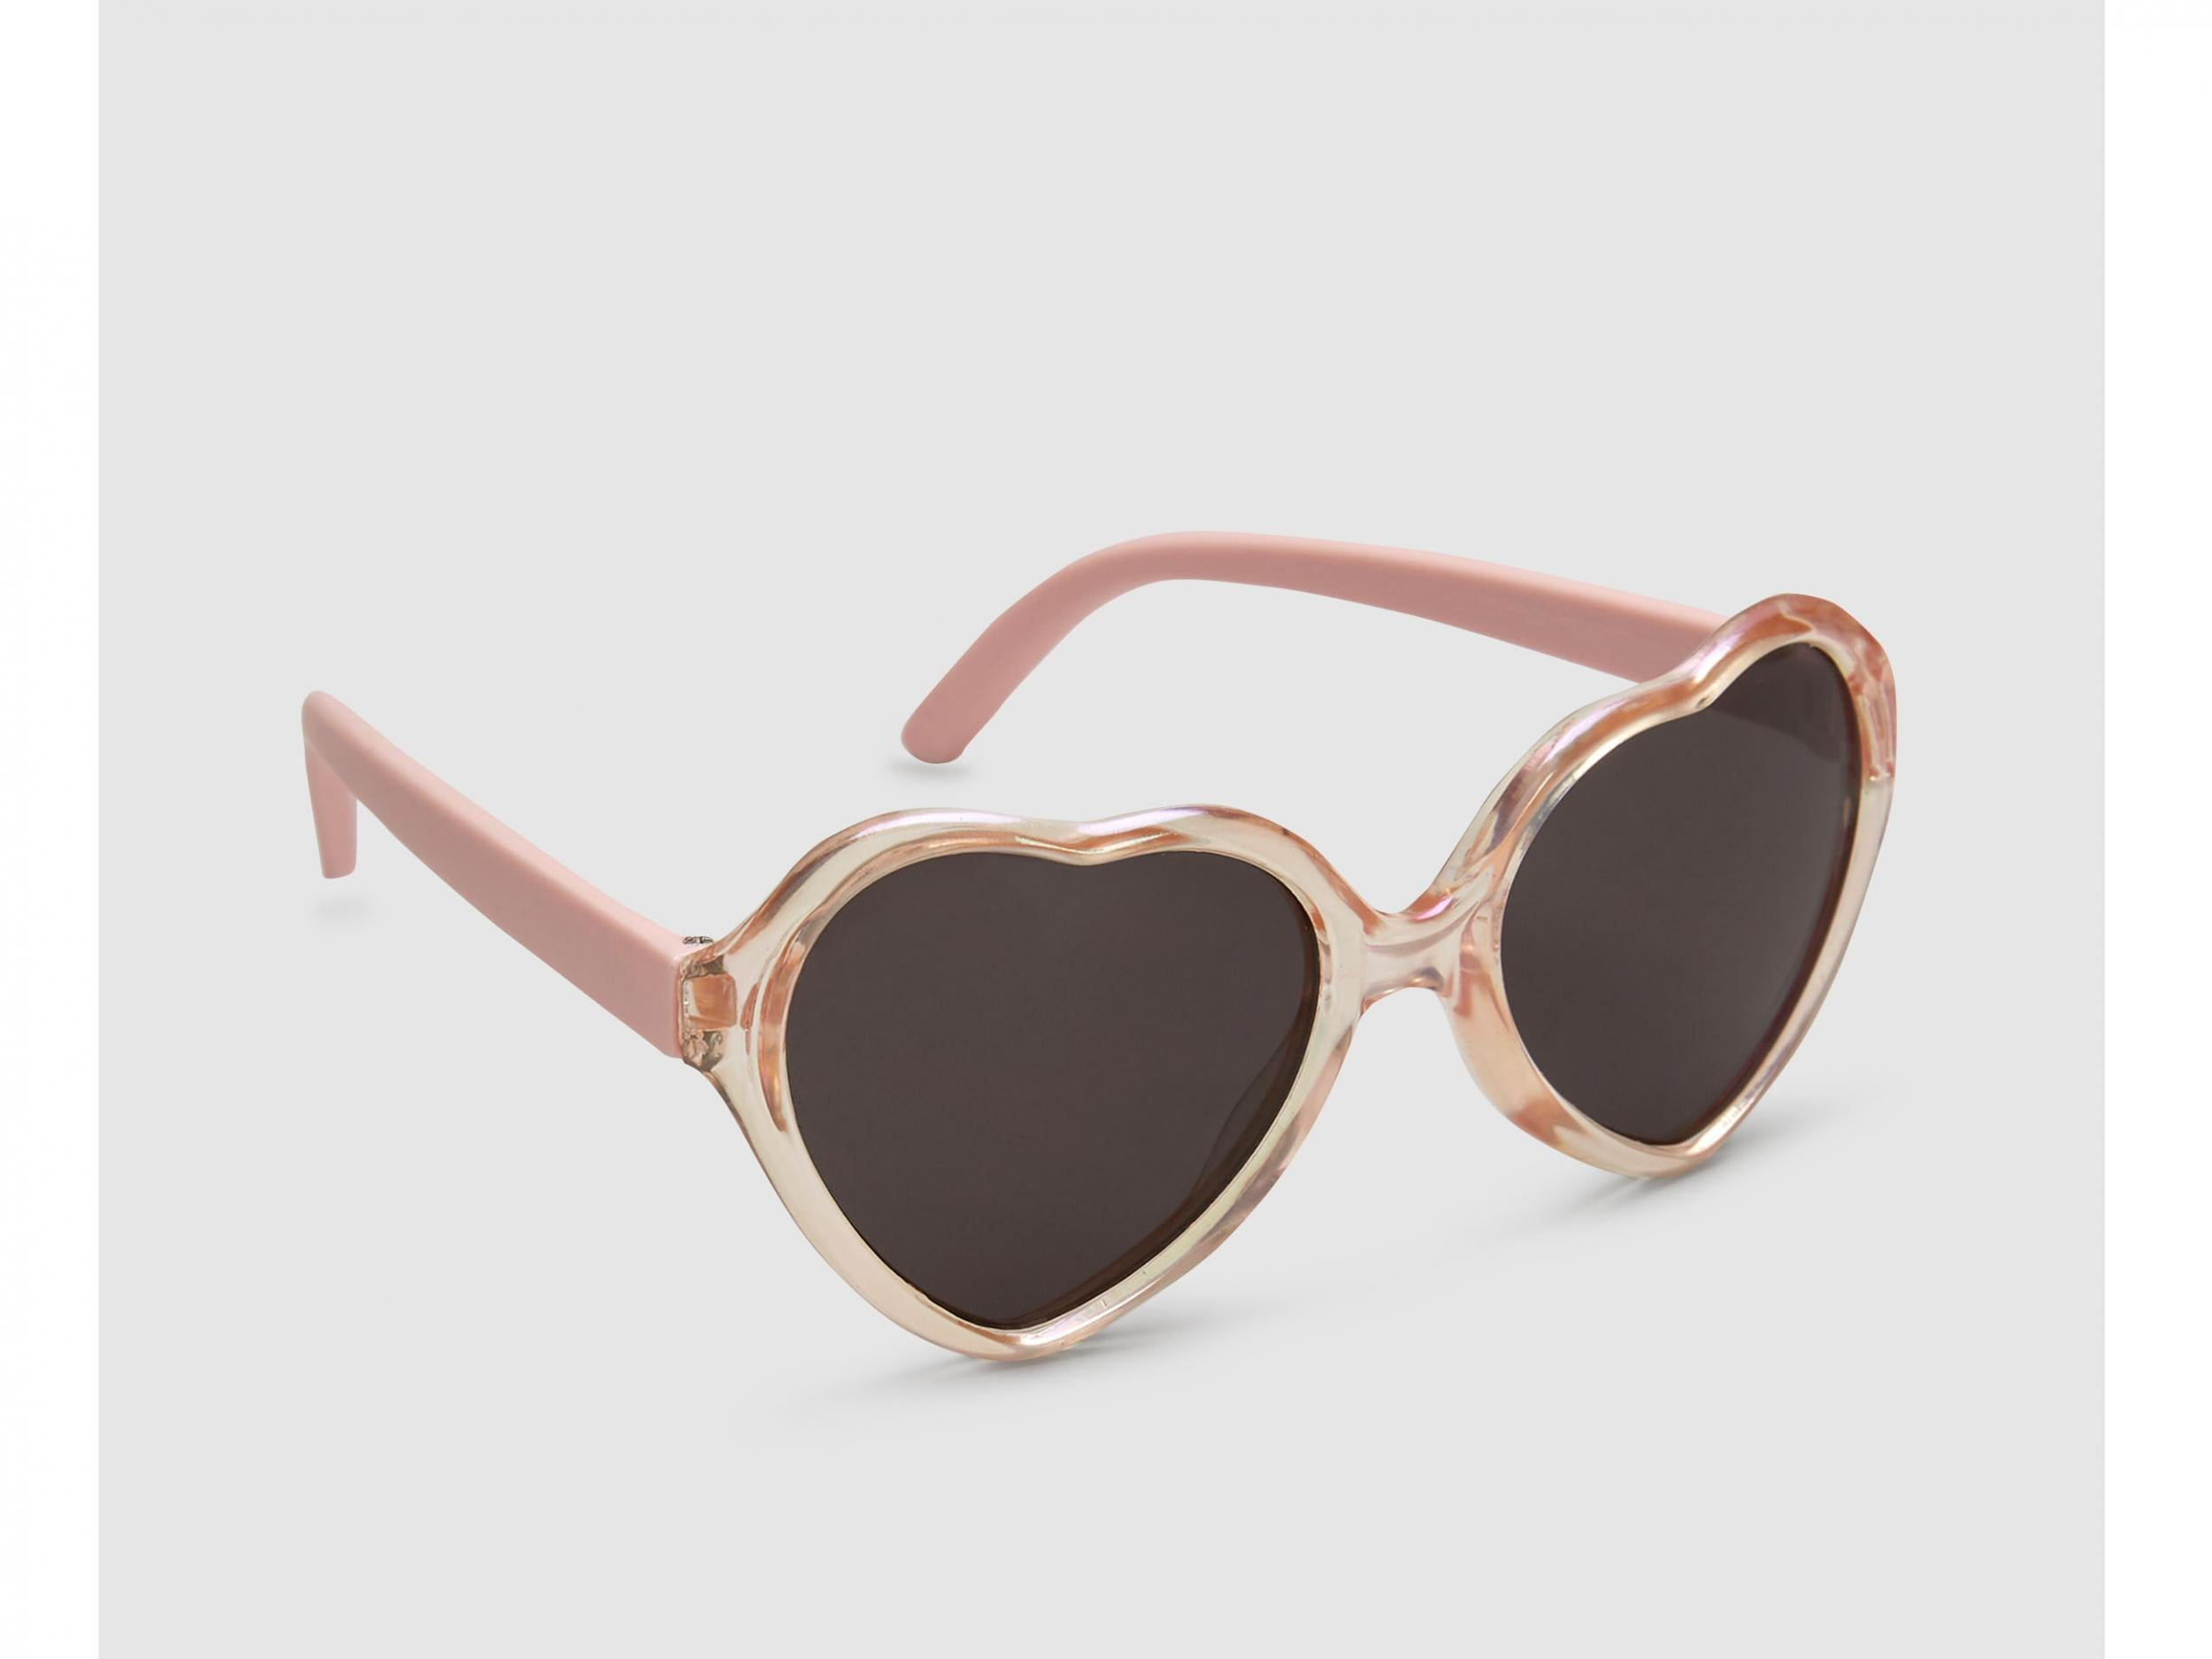 e5d6956b1e6f Best kids sunglasses to protect from harmful rays